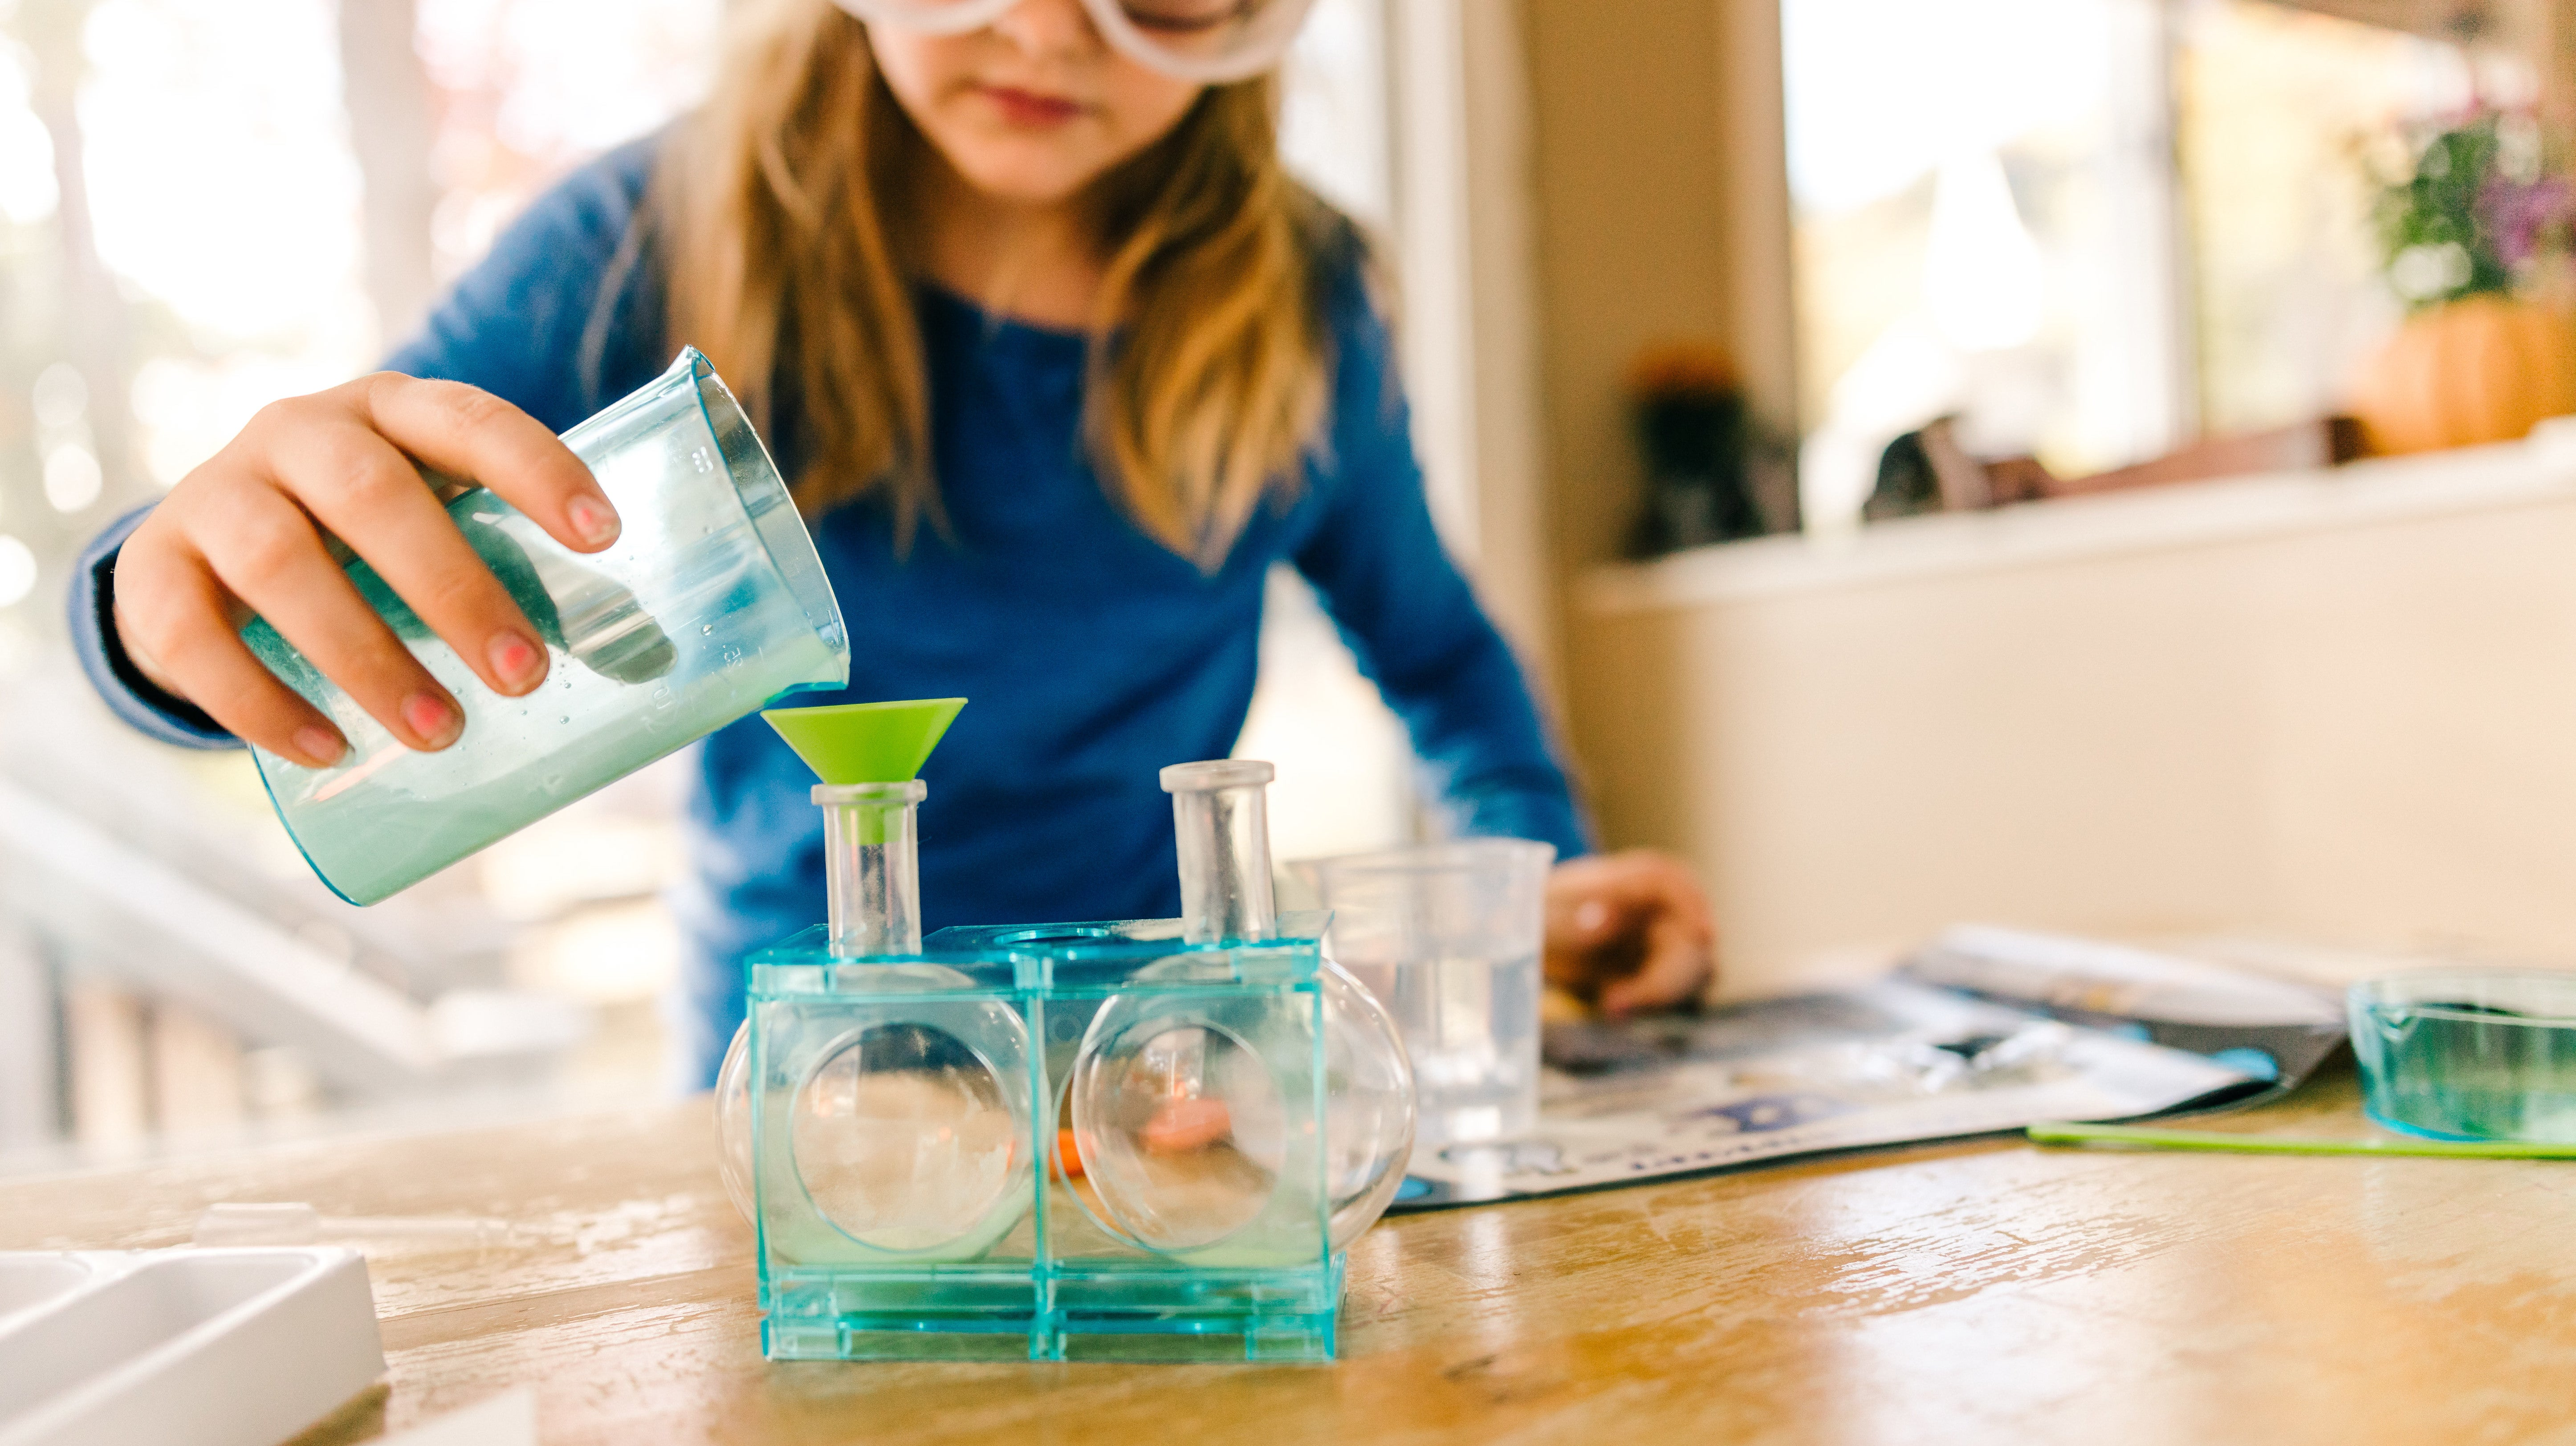 Find Hundreds Of Science Experiment Ideas In 'Scientific American'